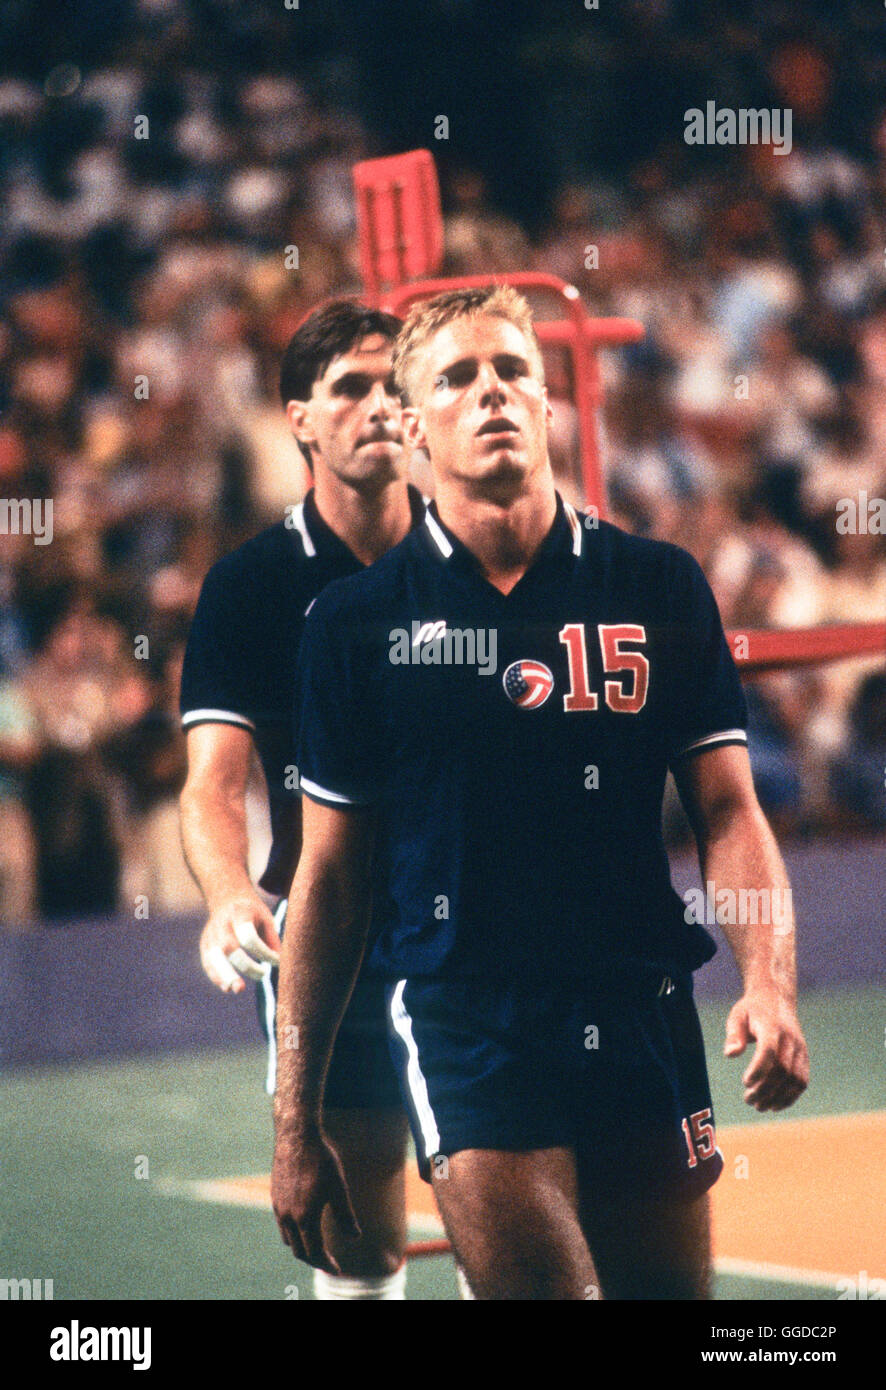 usa 15 karch kiraly mens 1984 olympic volleyball team stock image